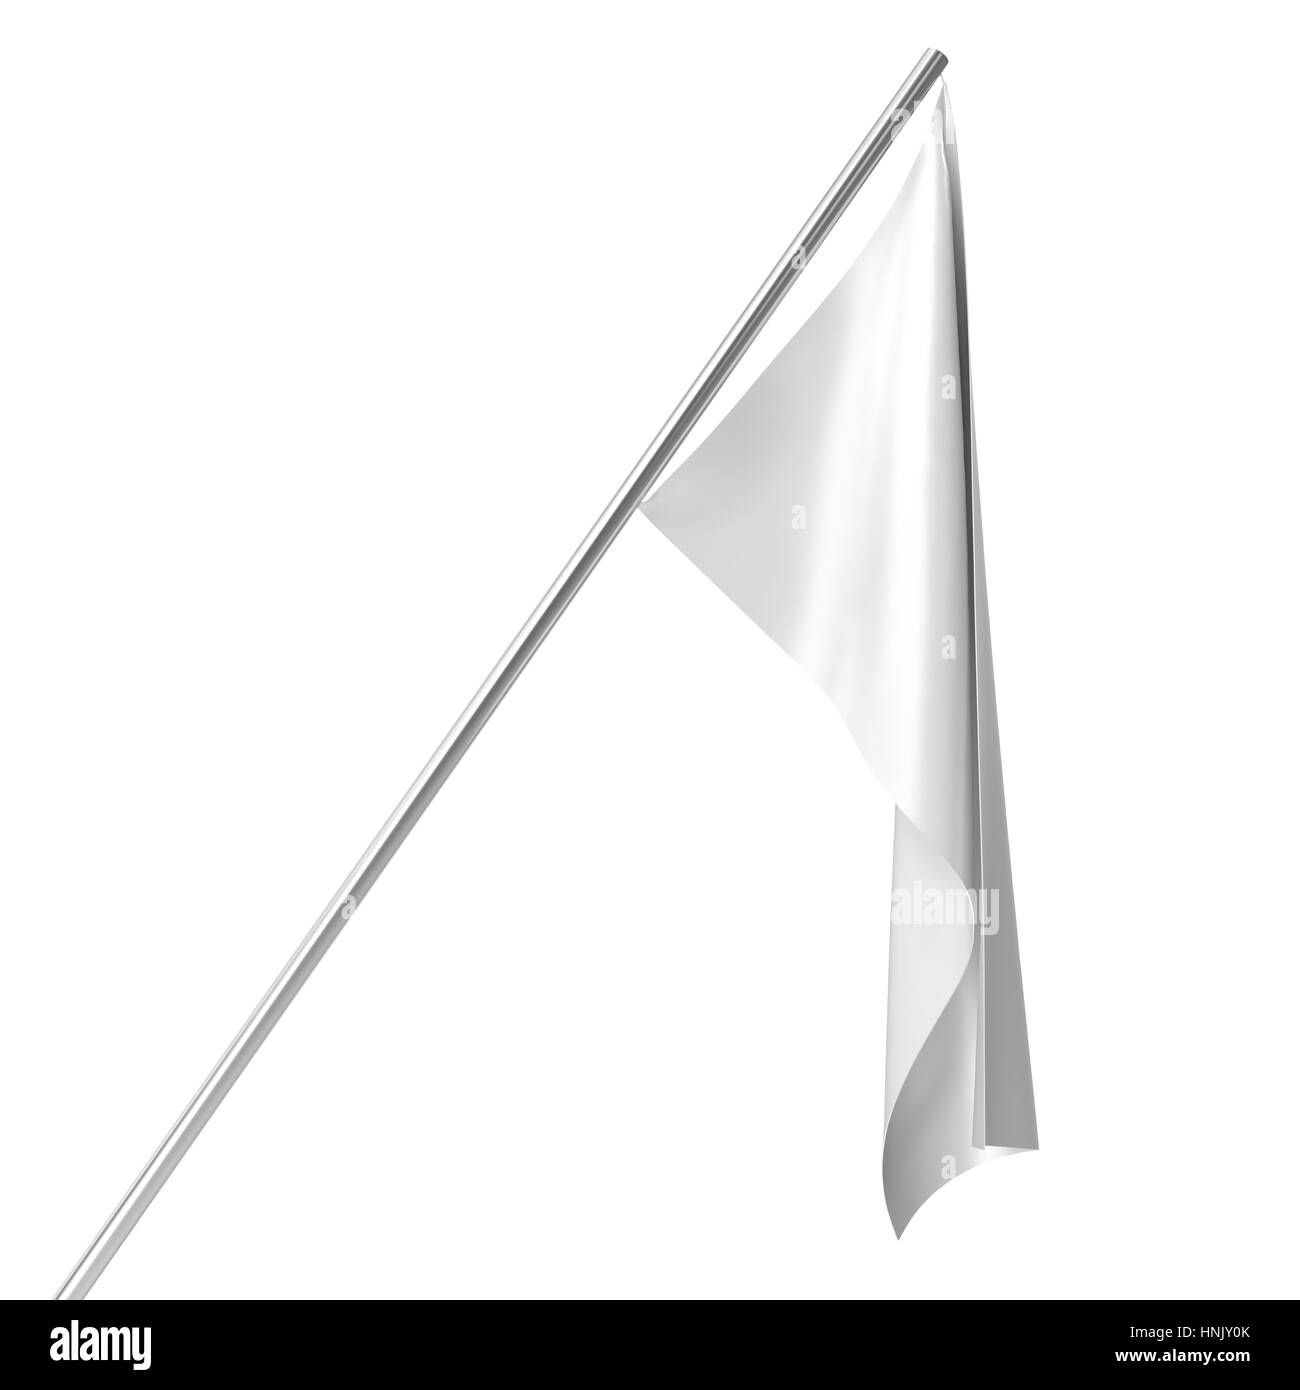 White flag on flagpole at rest empty mockup, flag isolated on white background. Blank Mock-up for your design projects, - Stock Image